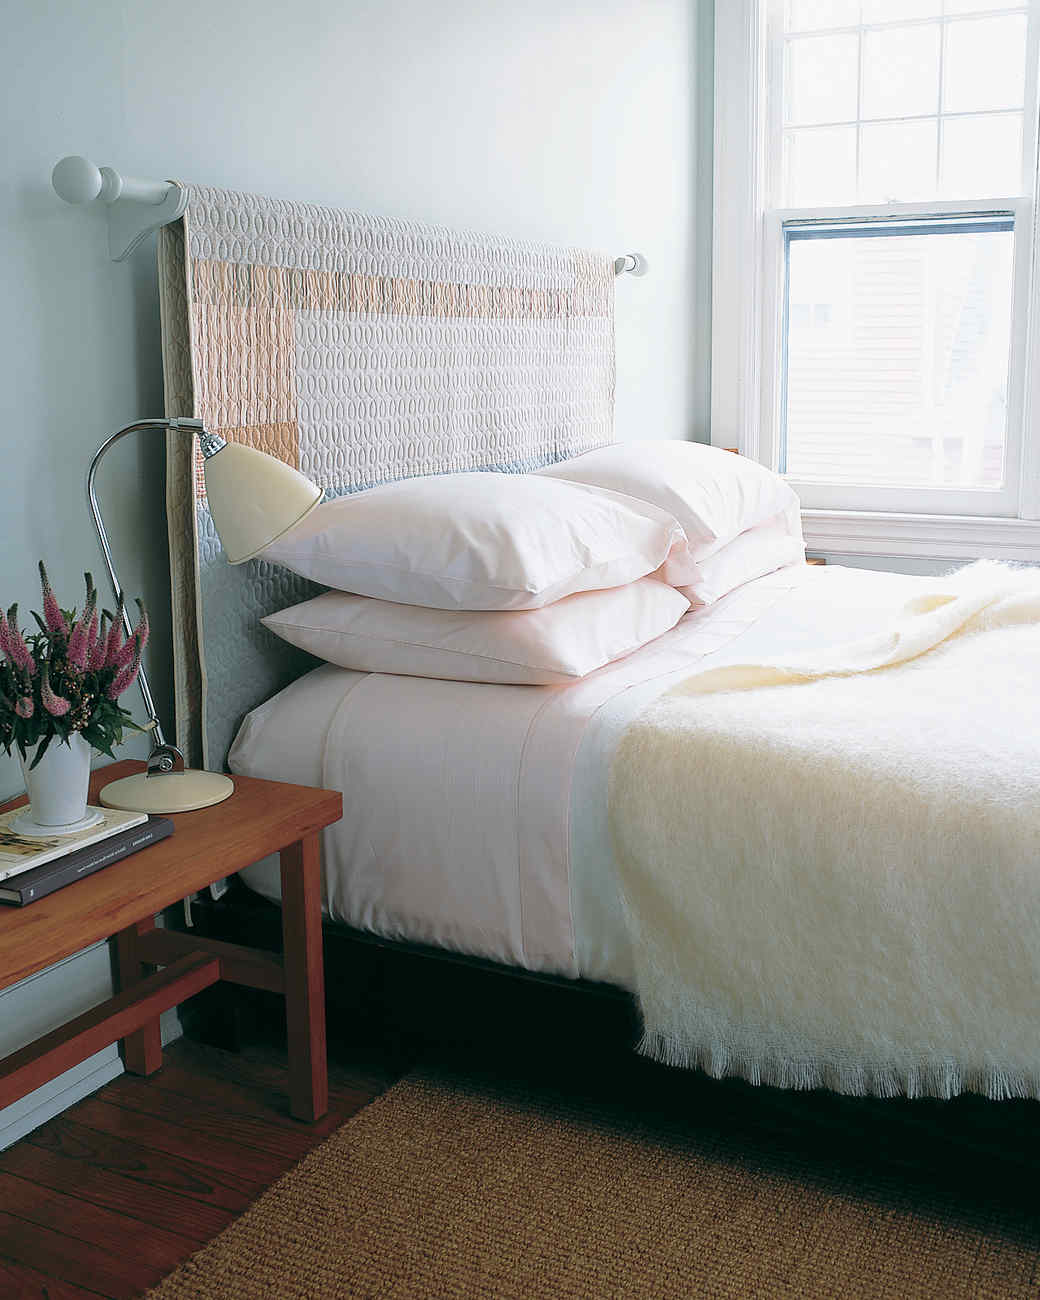 11 diy headboard ideas to give your bed a boost martha - Ideas para cabeceros de cama baratos ...